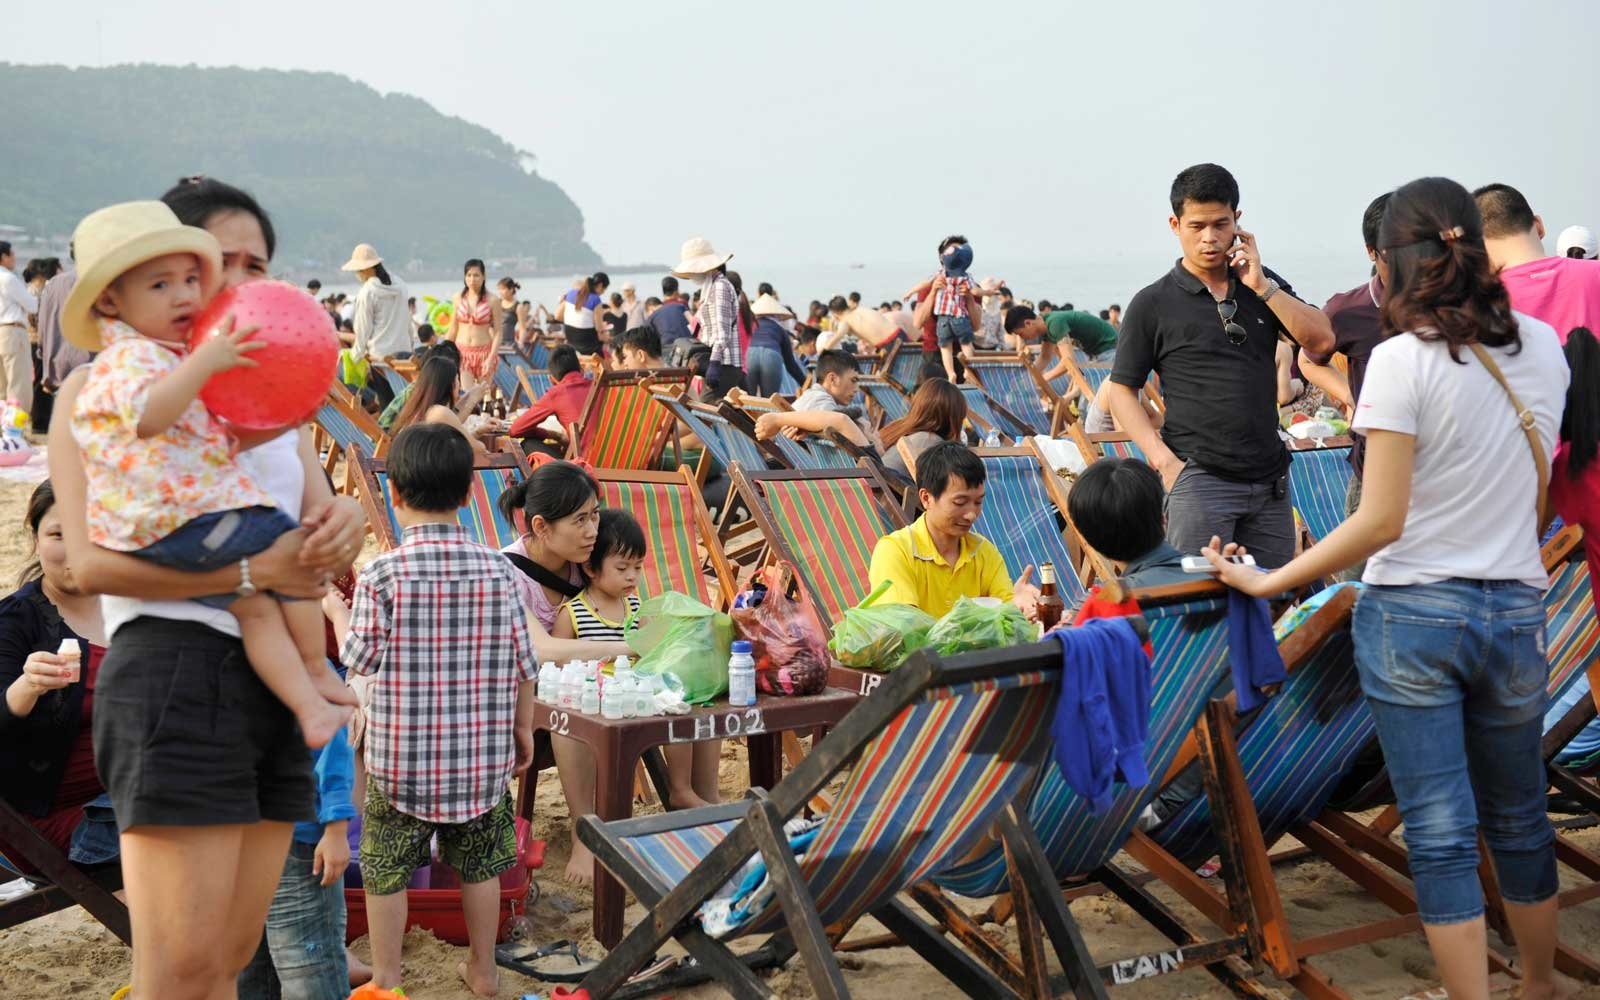 People relaxing on Do Son beach in Vietnam, on May Day